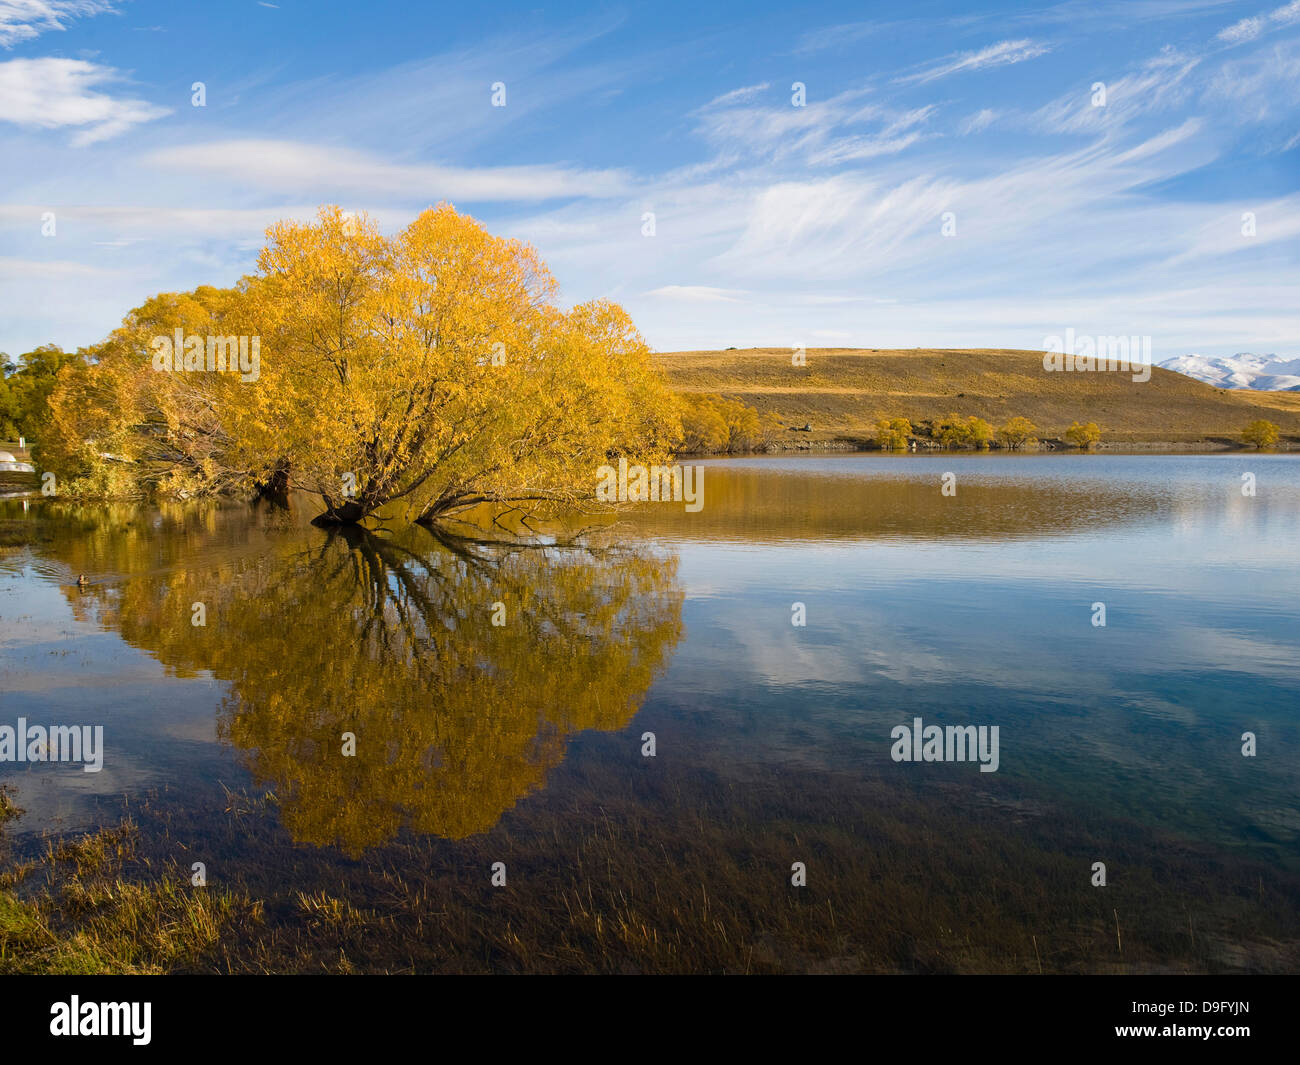 Autumn trees reflected in the still morning water, Lake Alexandrina, Canterbury  Region, South Island, New Zealand - Stock Image